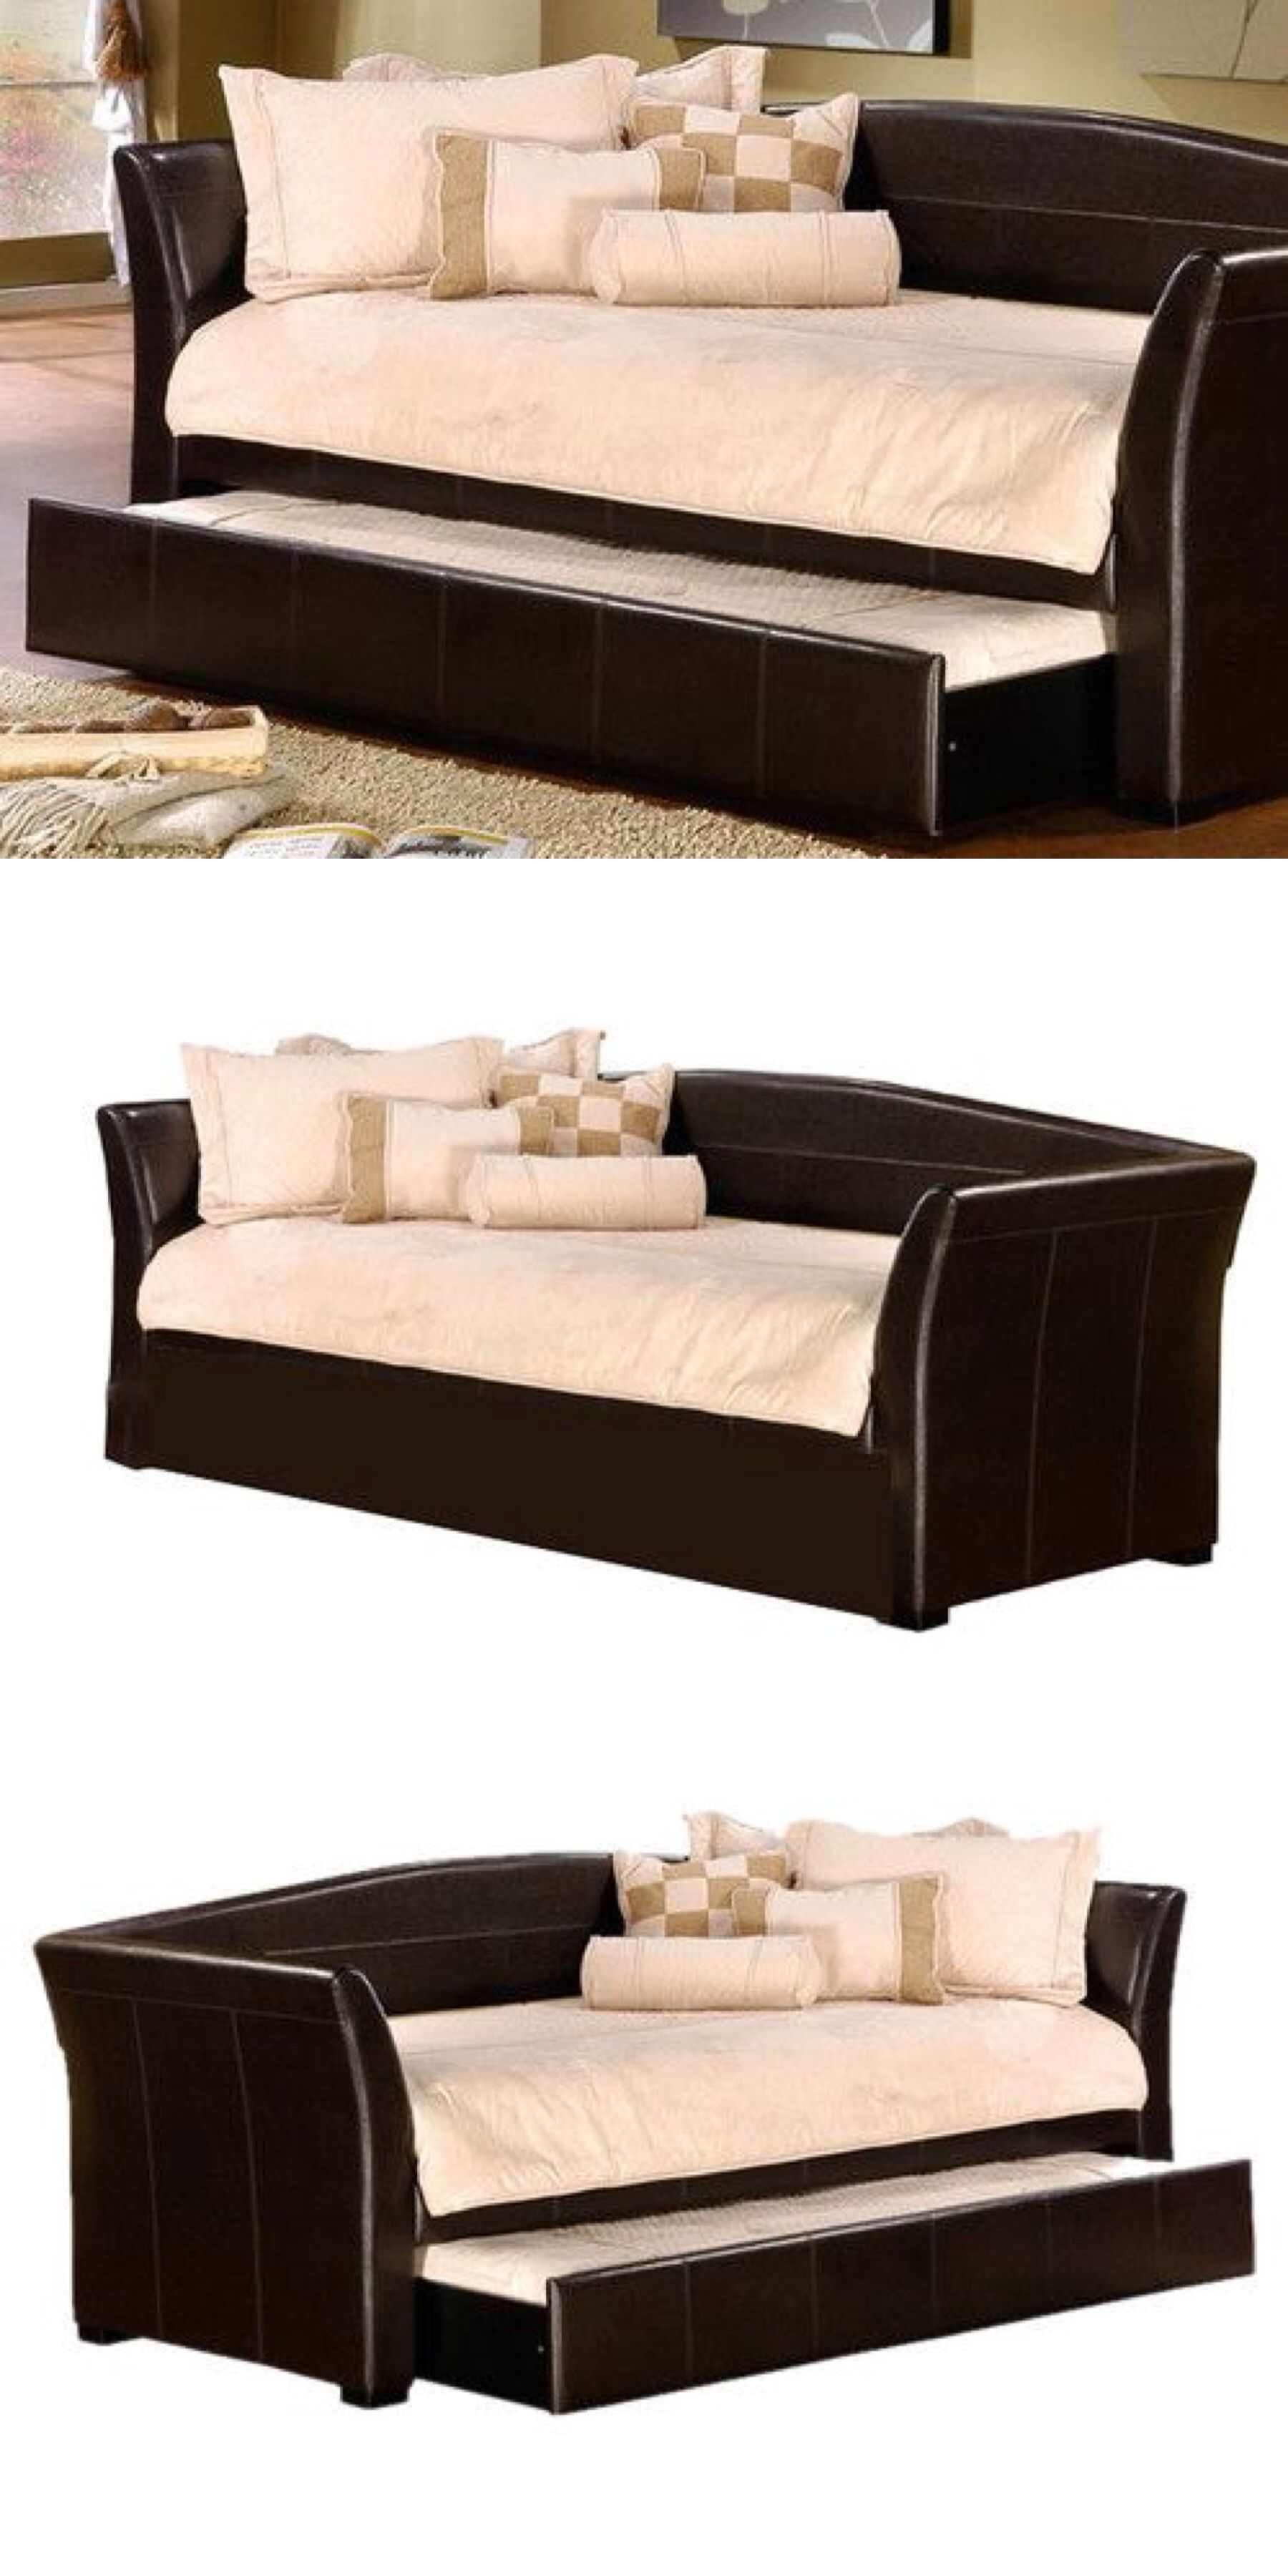 Day Bed Sofa With Pull Out Trundle Bed Great Space